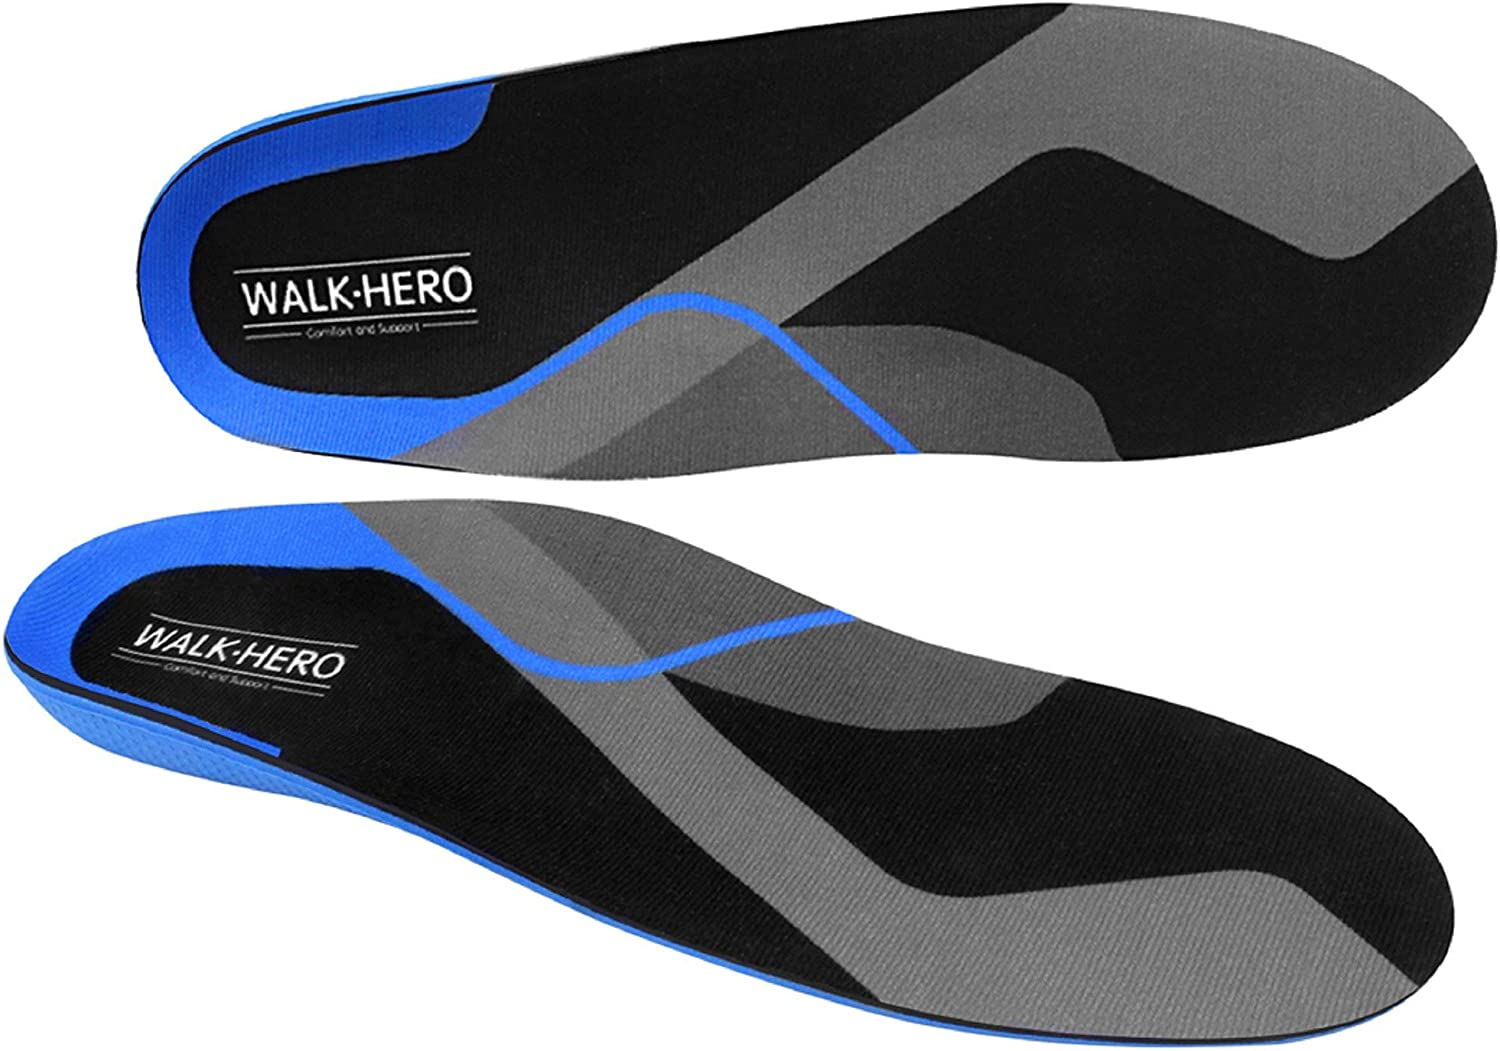 Plantar Fasciitis Elegant Feet Insoles Arch Inserts Orthotics R Supports Special price for a limited time